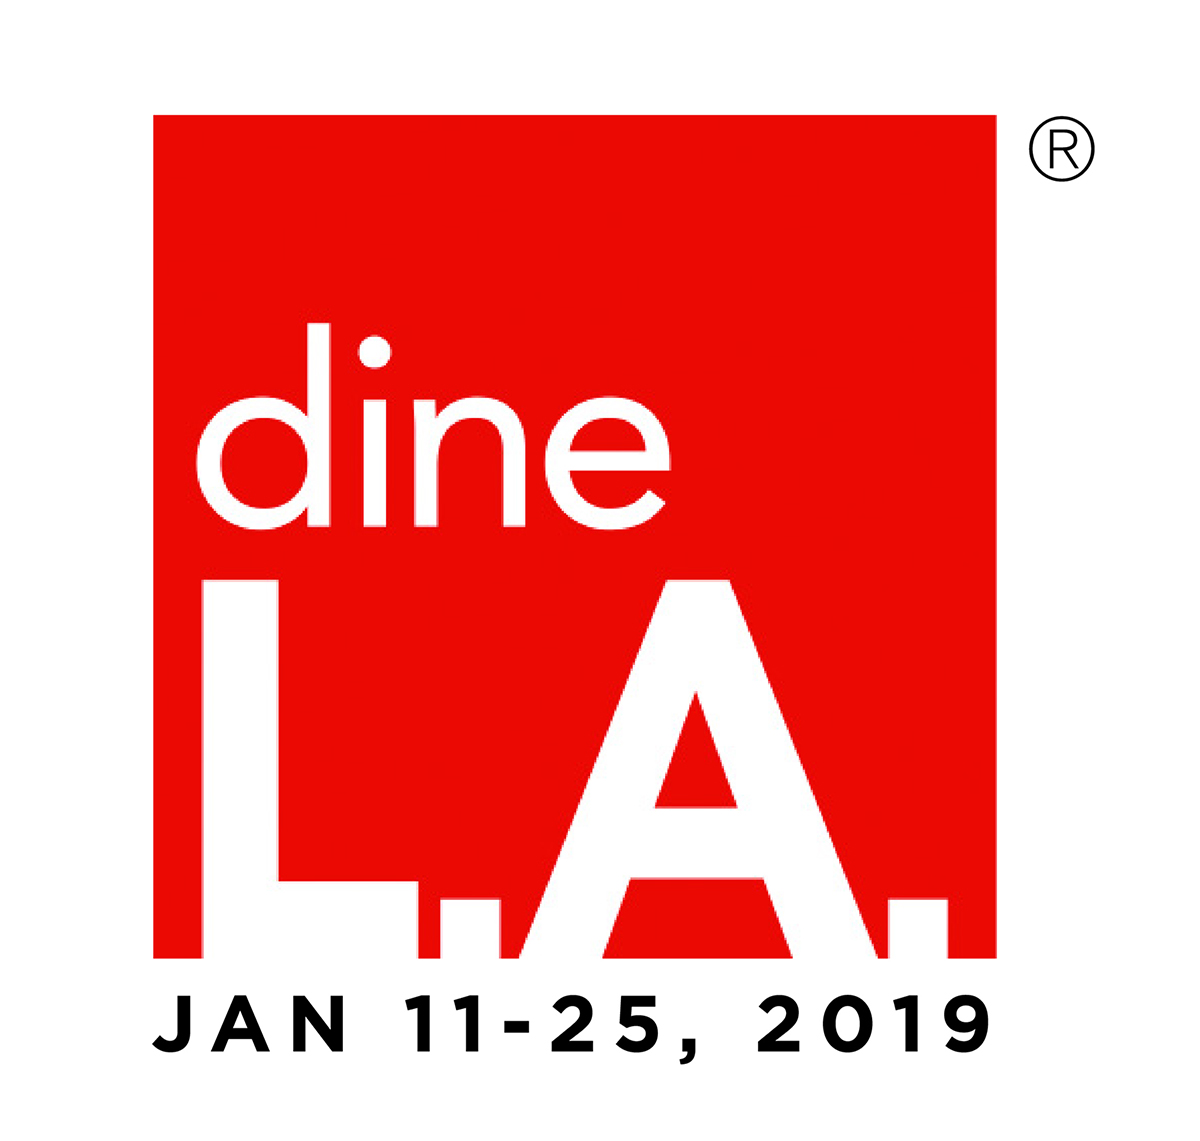 dinela_lockup_logo_winter_2019